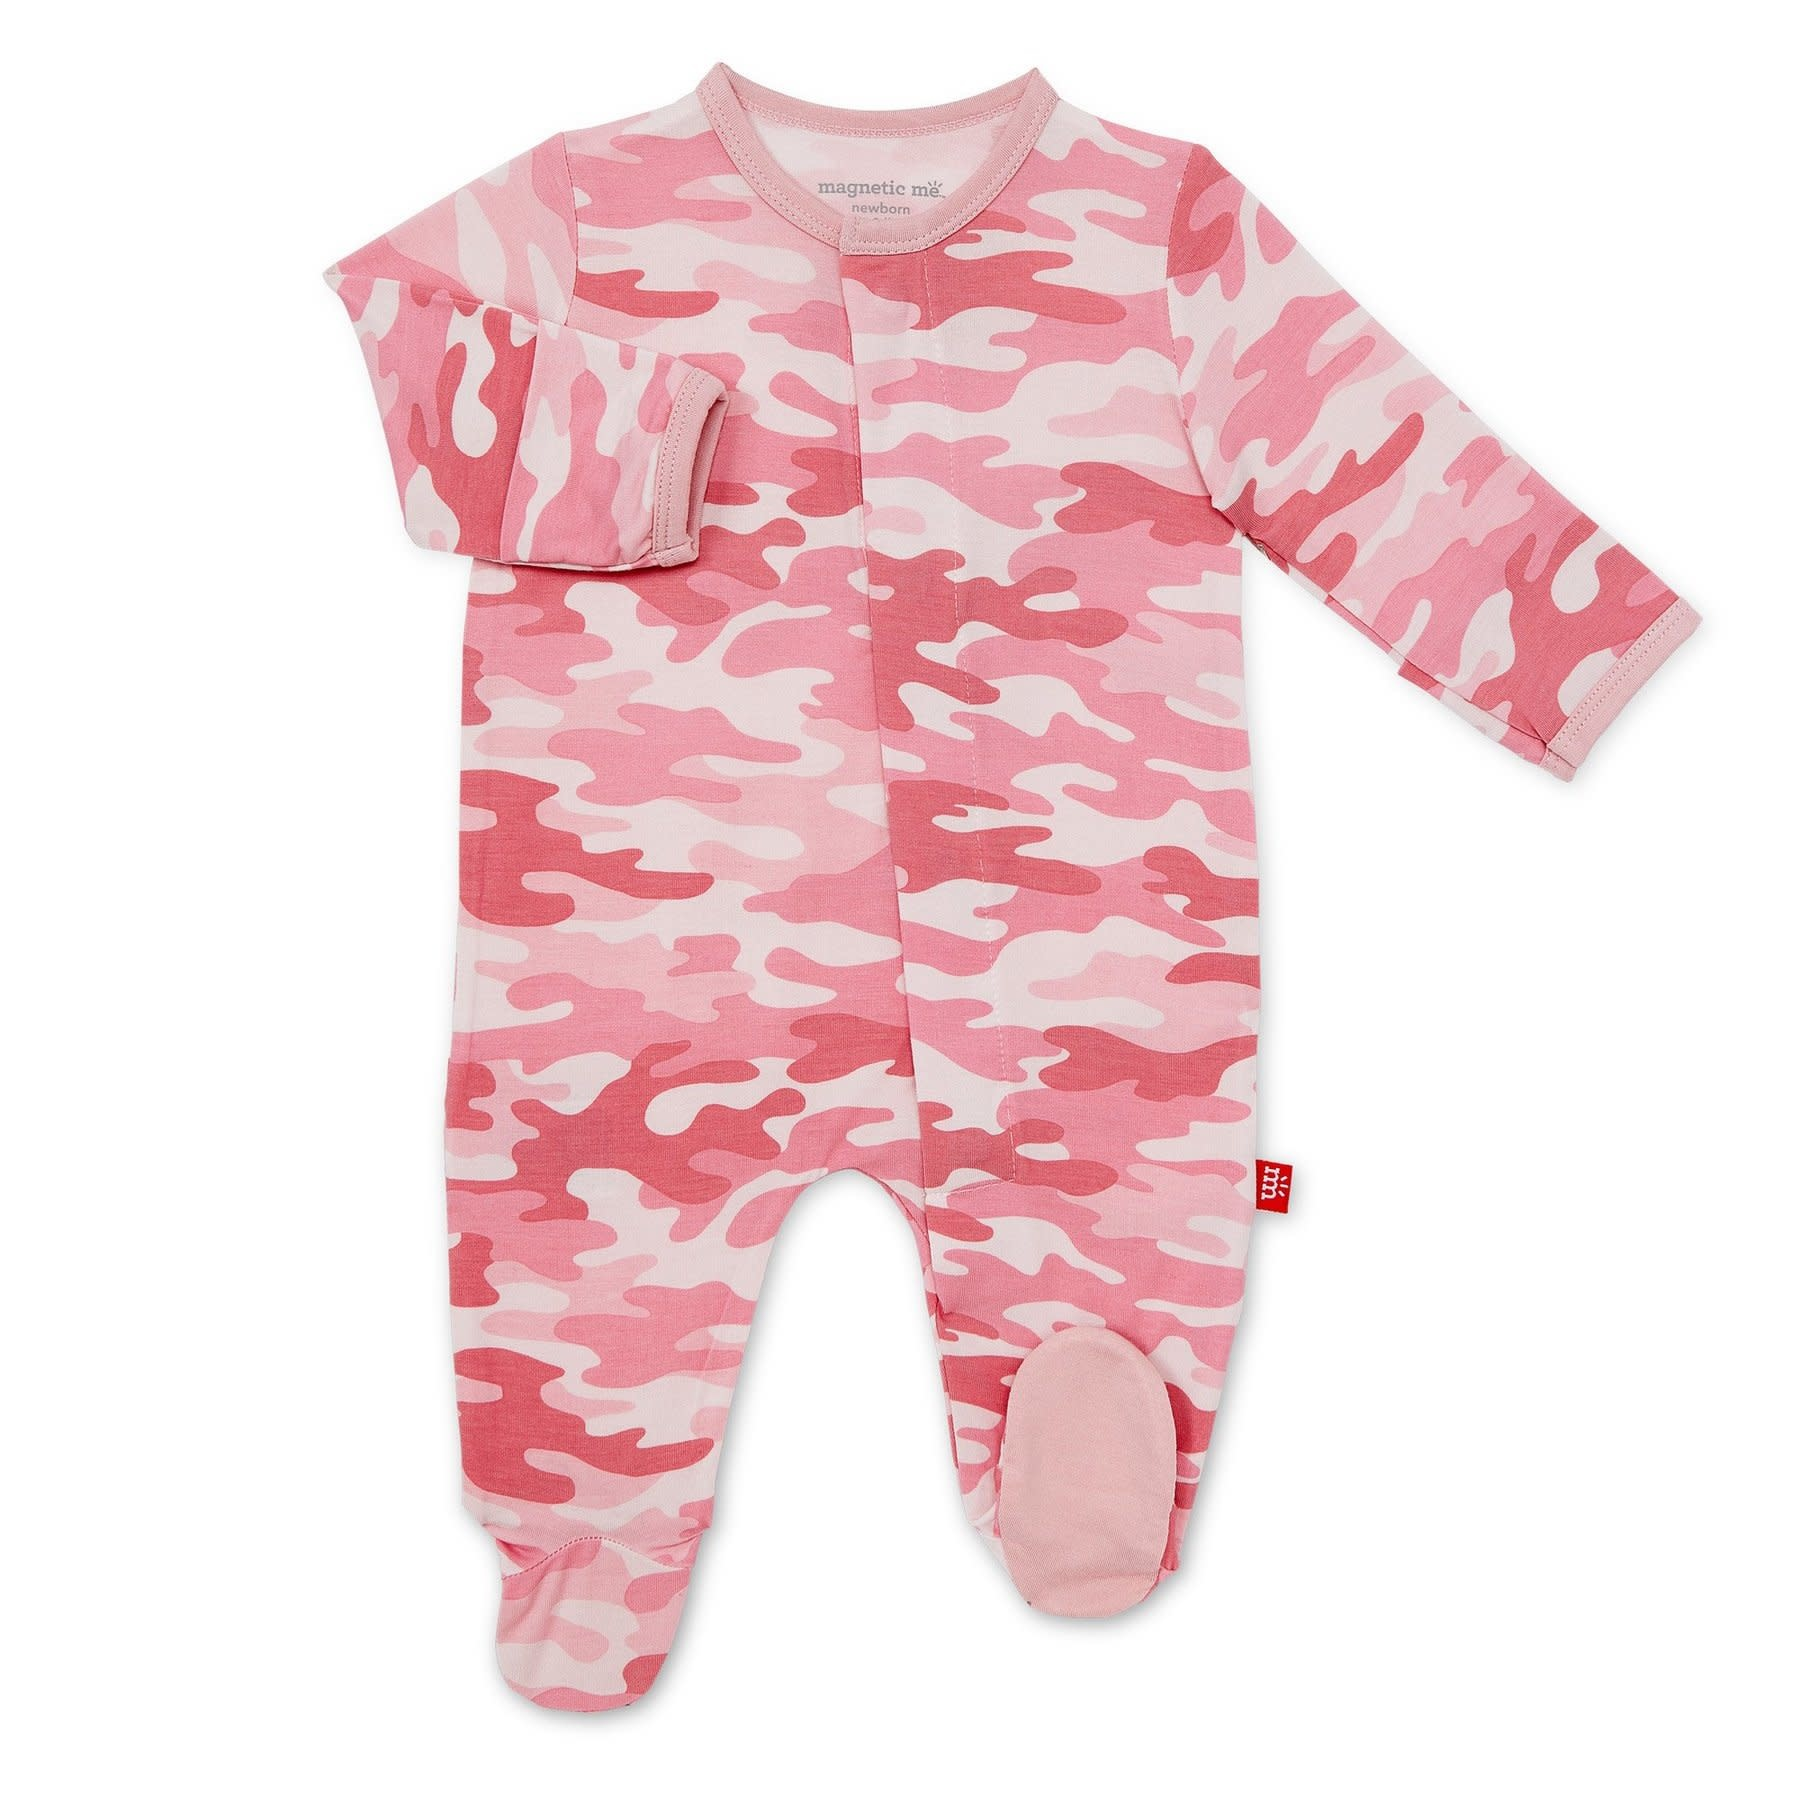 Magnificent Baby Pink Camo Modal Footie